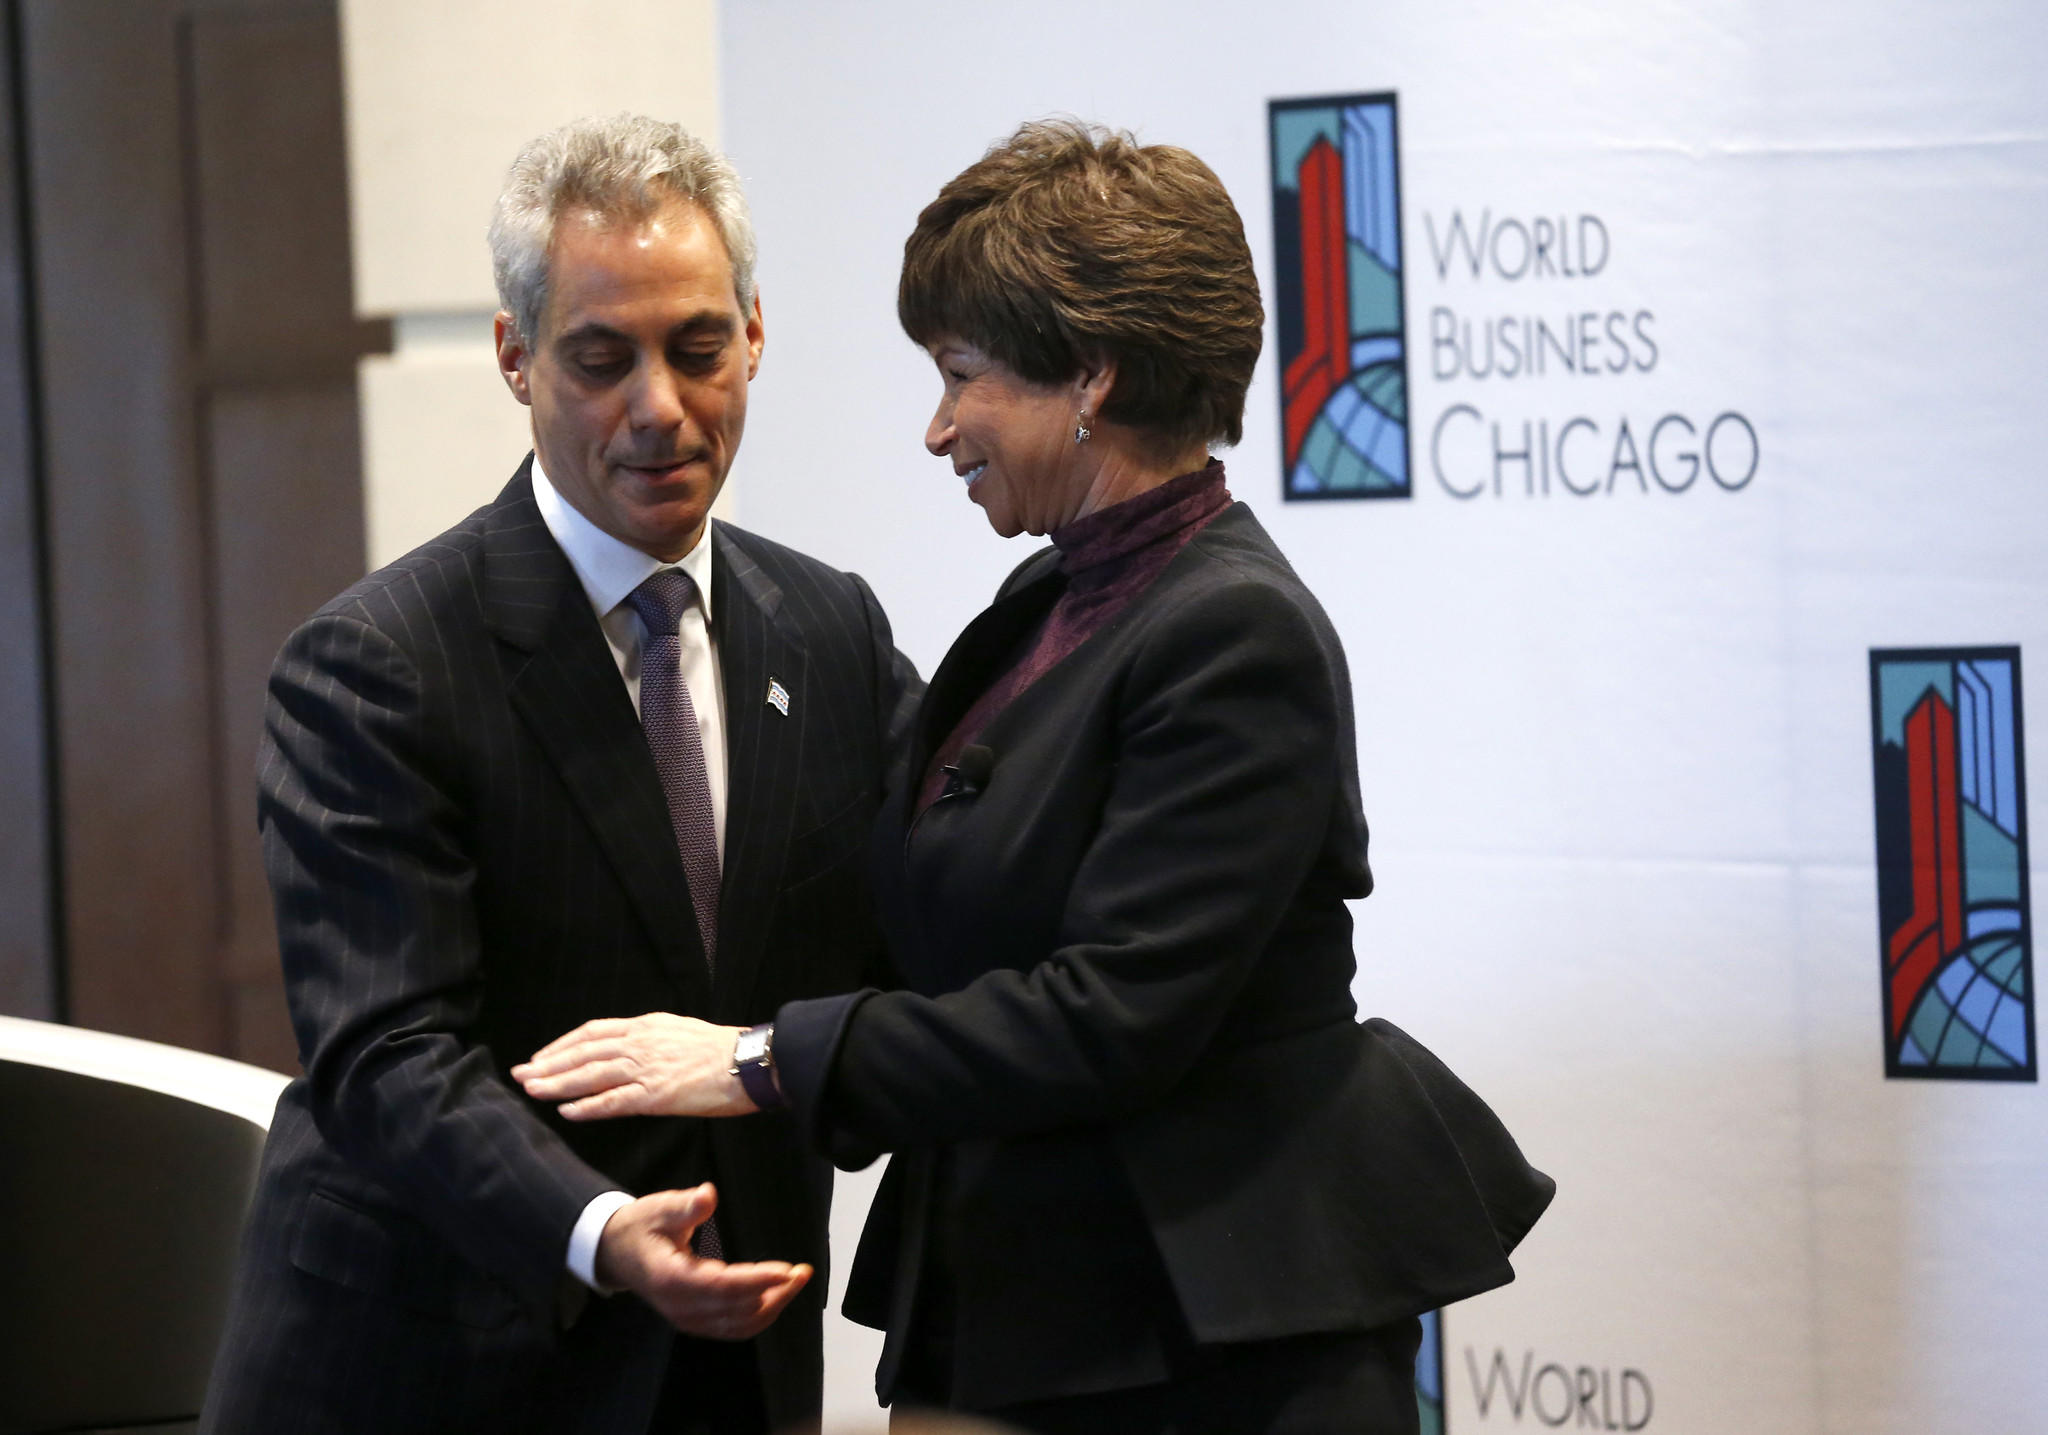 Mayor Rahm Emanuel gives a hug to White House Senior Advisor Valerie Jarrett.